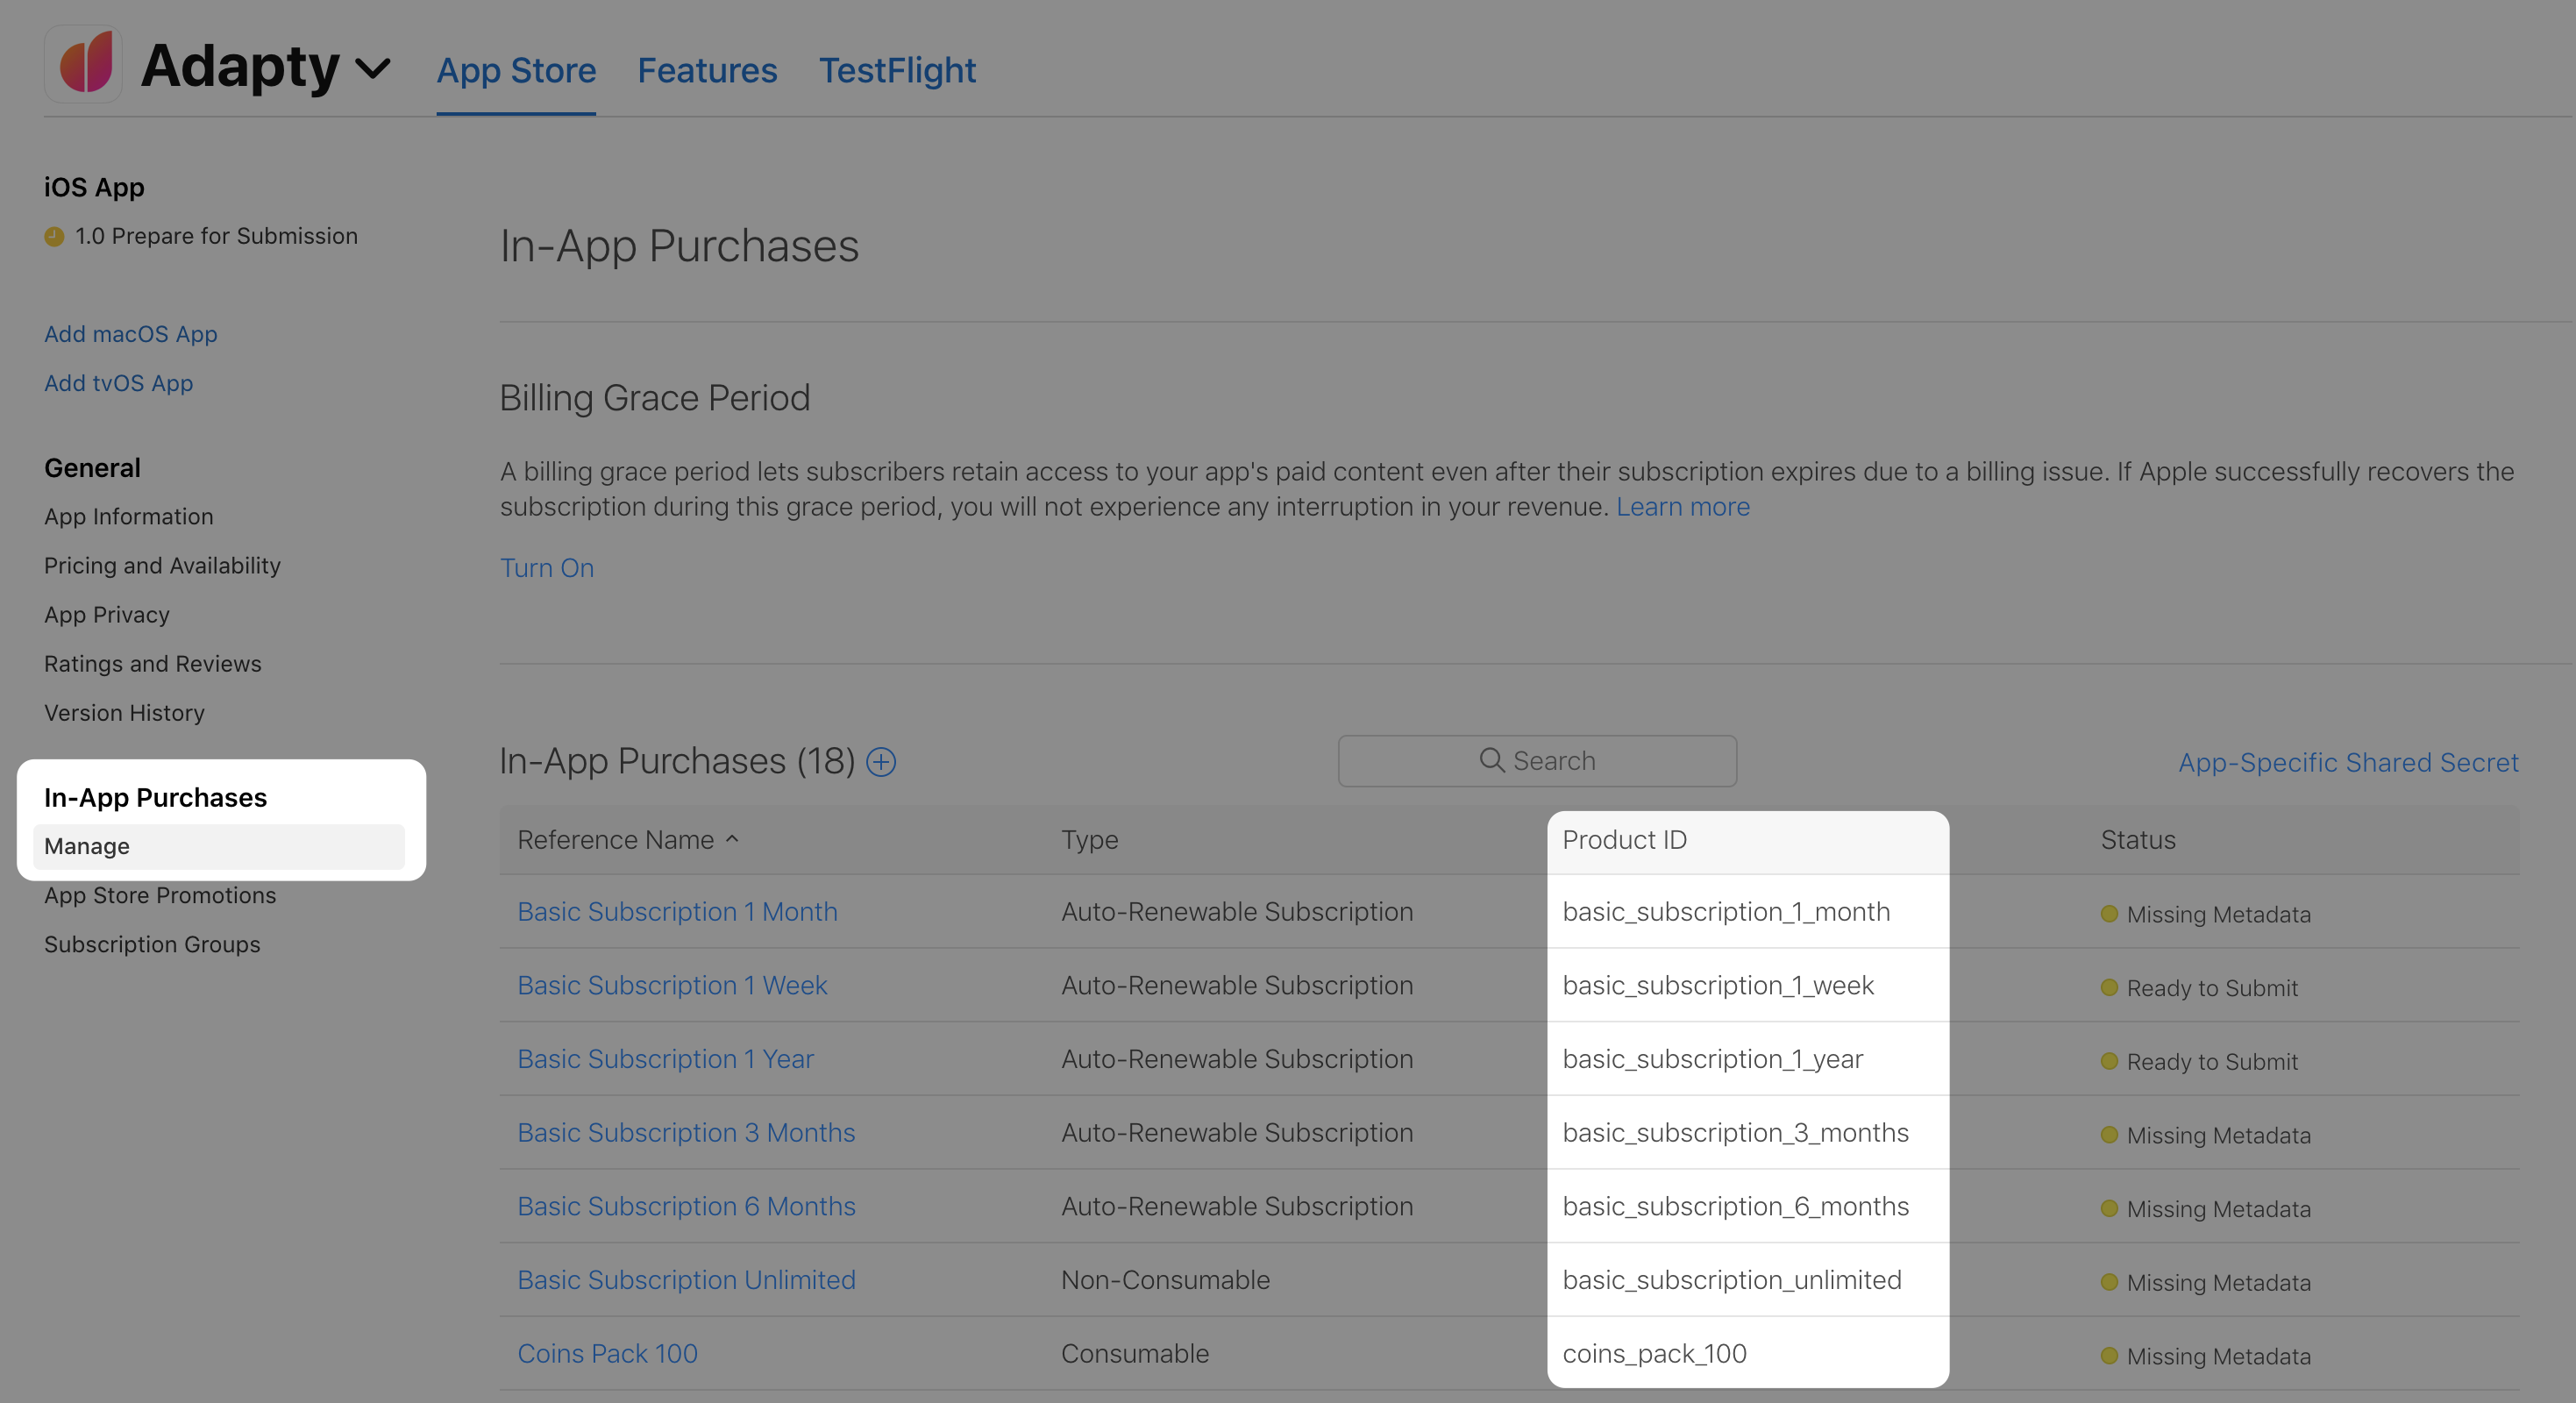 App Store product IDs